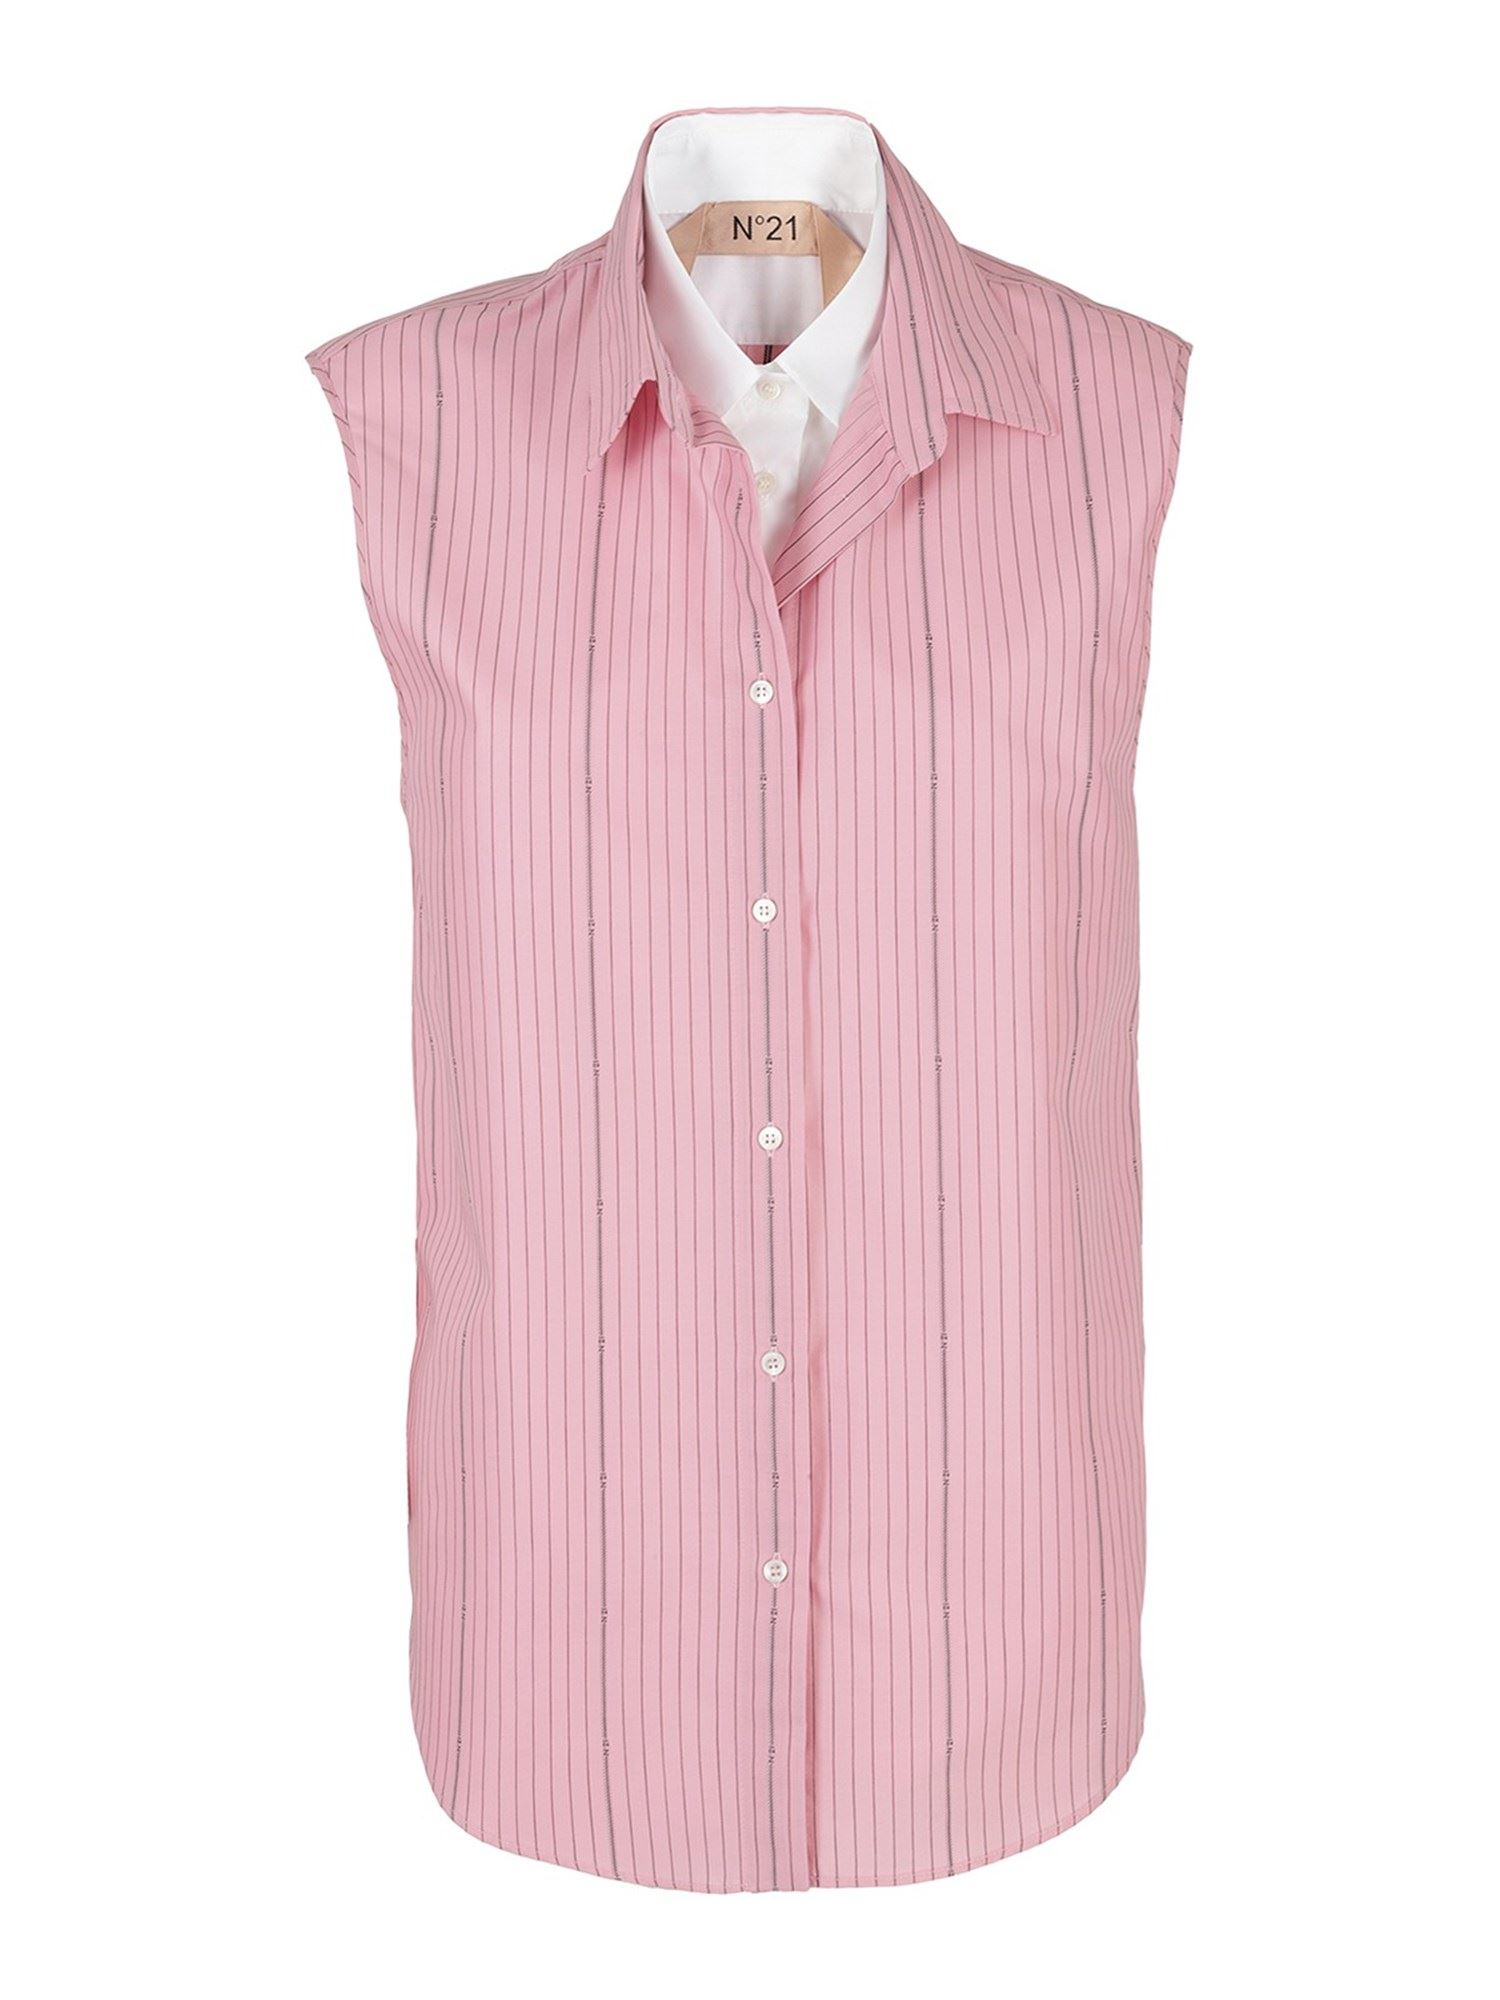 N°21 TWO-TONE SHIRT IN PINK